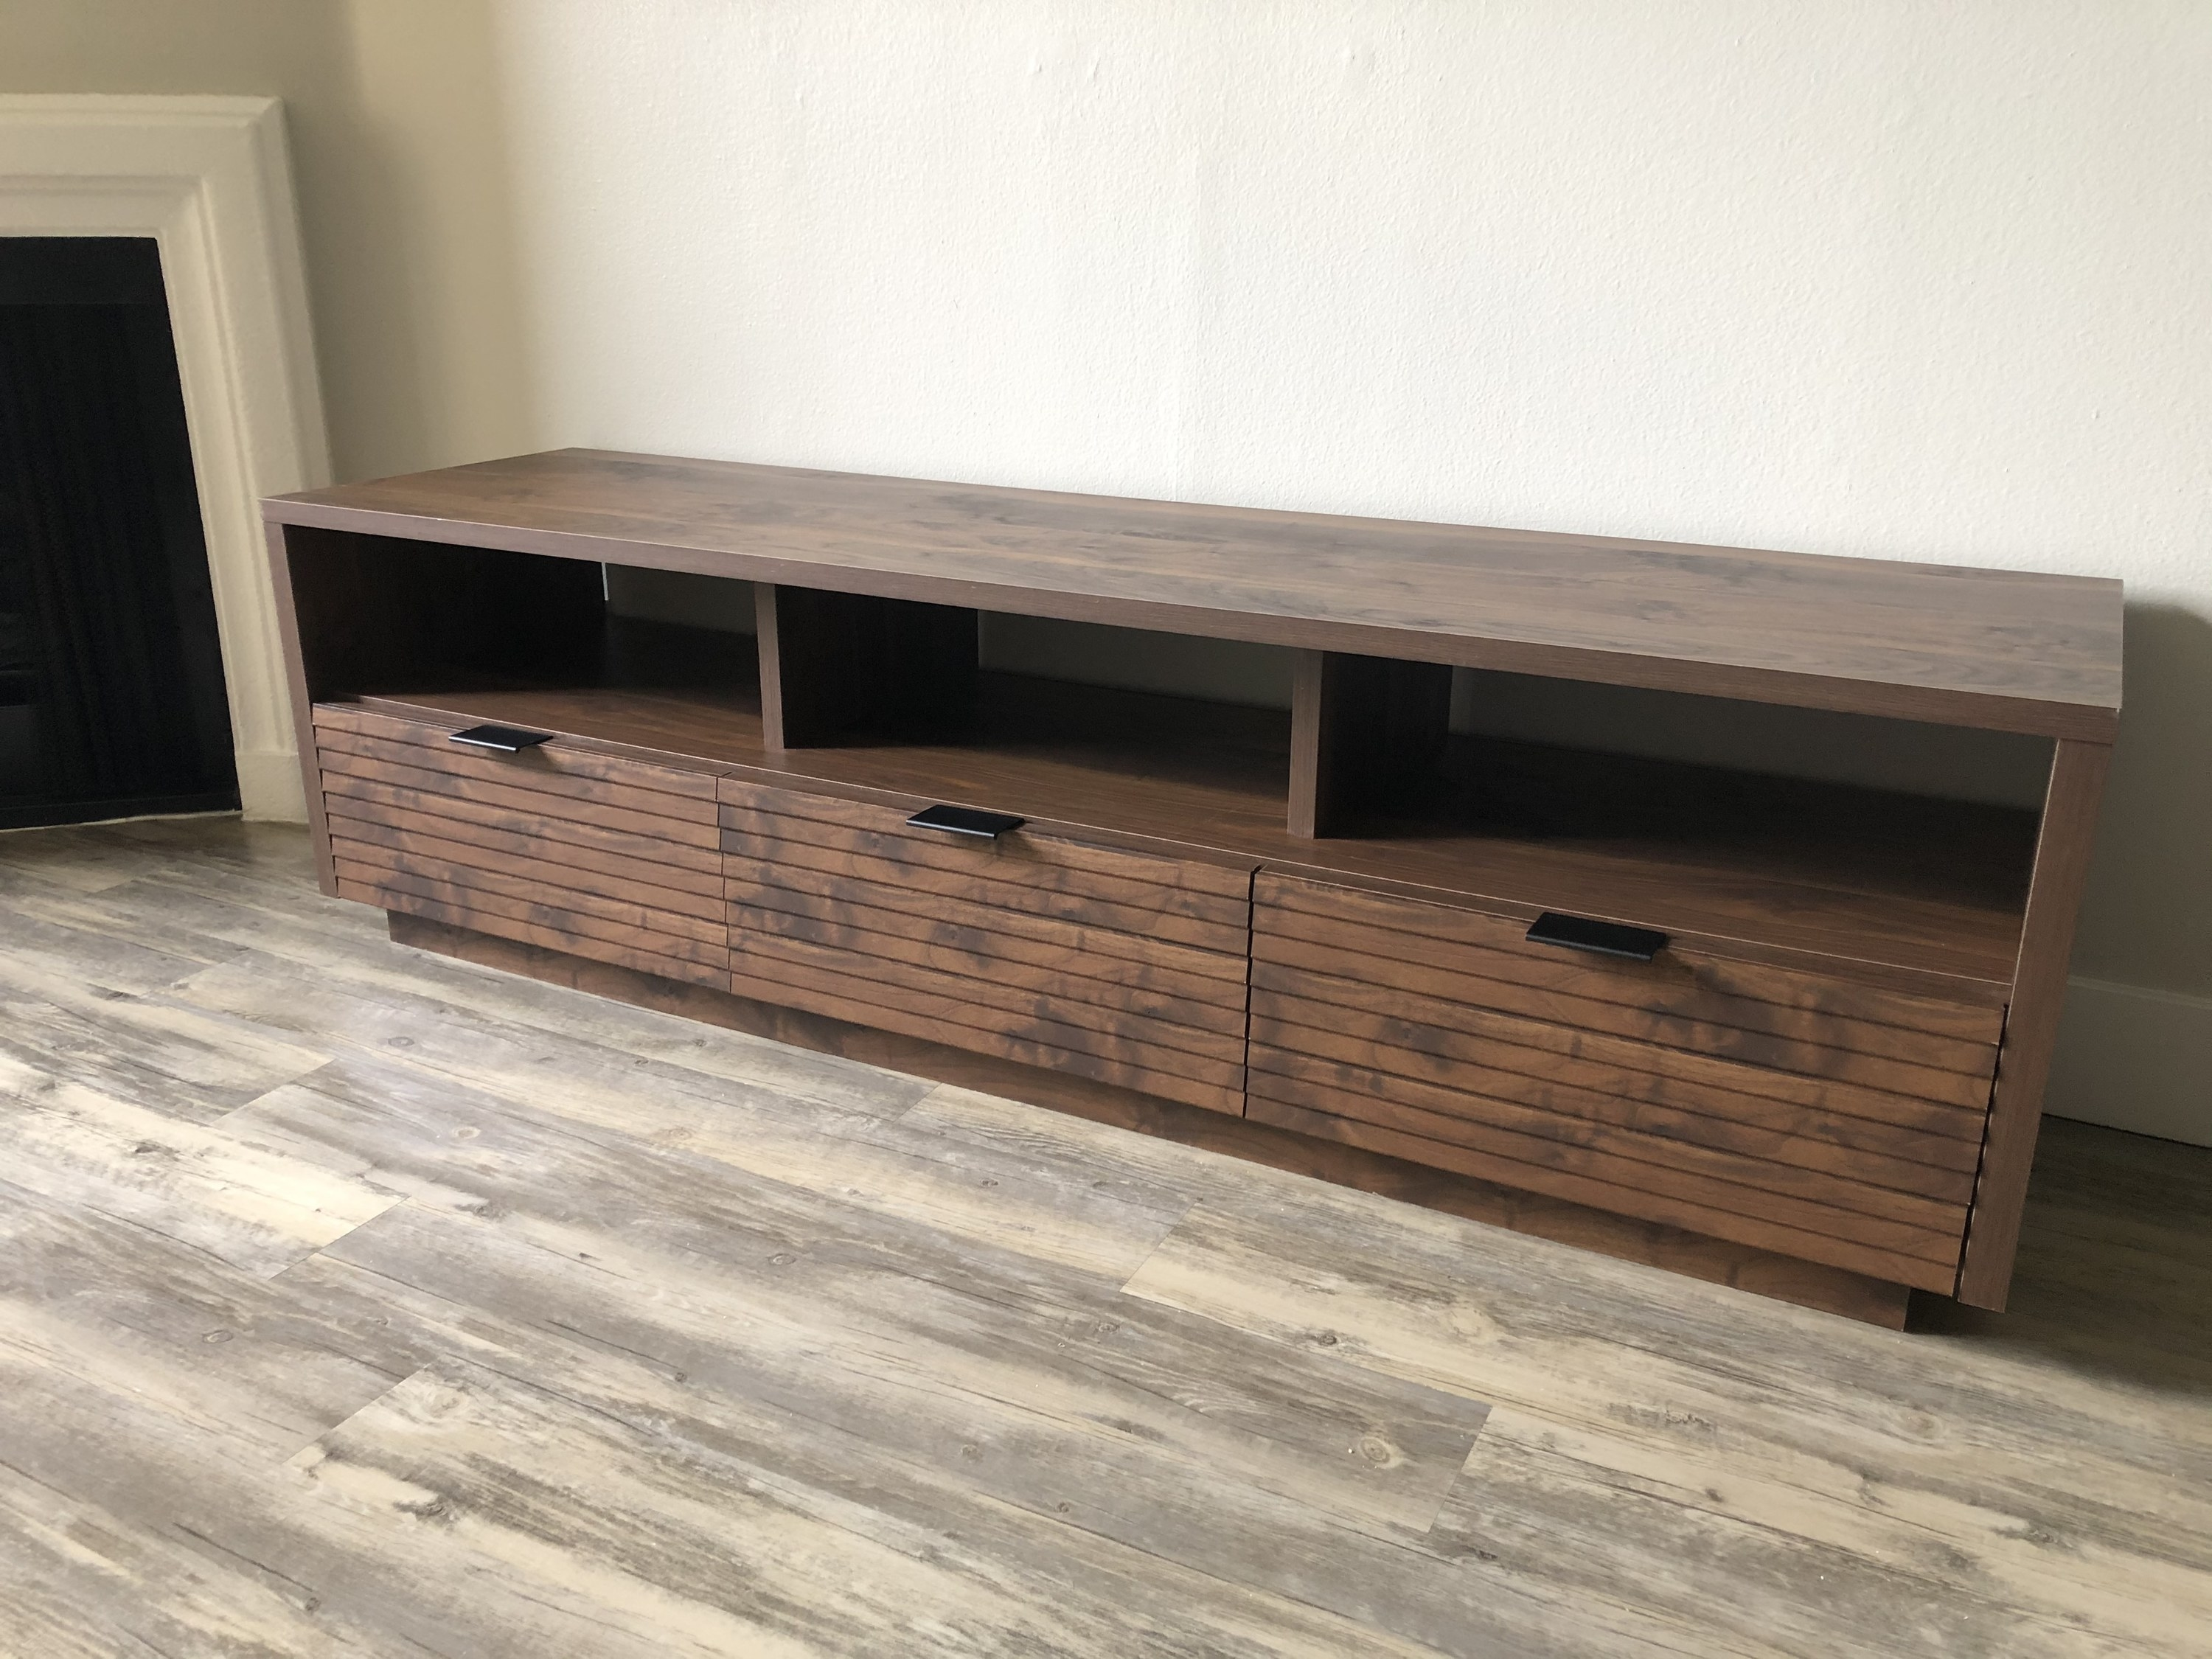 Photo of the completed TV stand